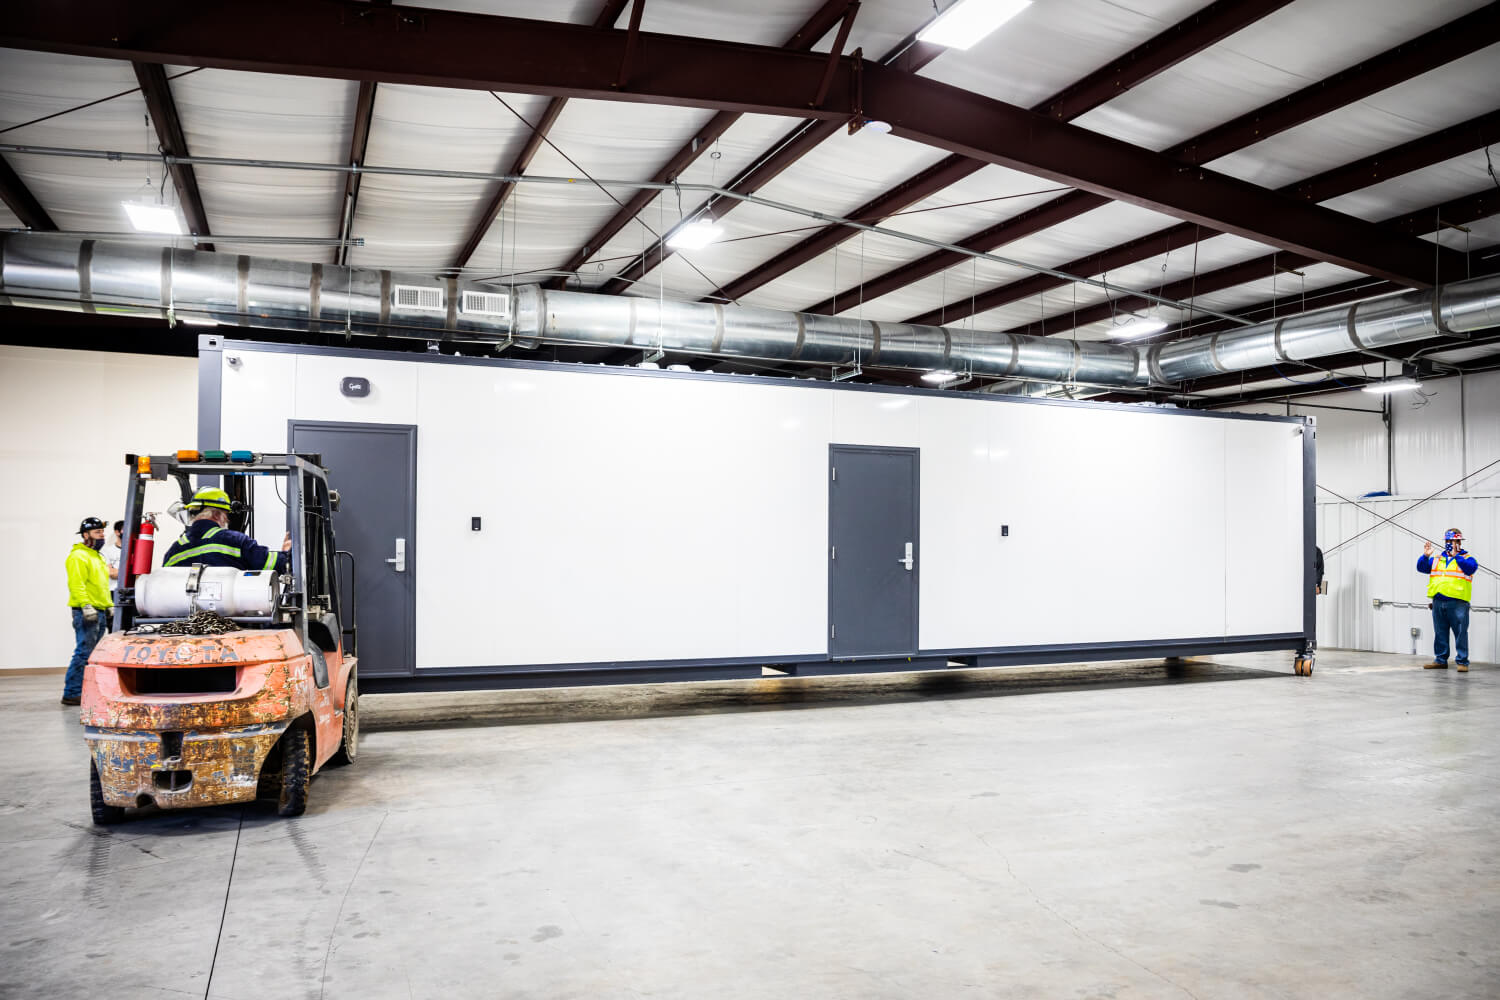 Installing mobile lab in partner facility